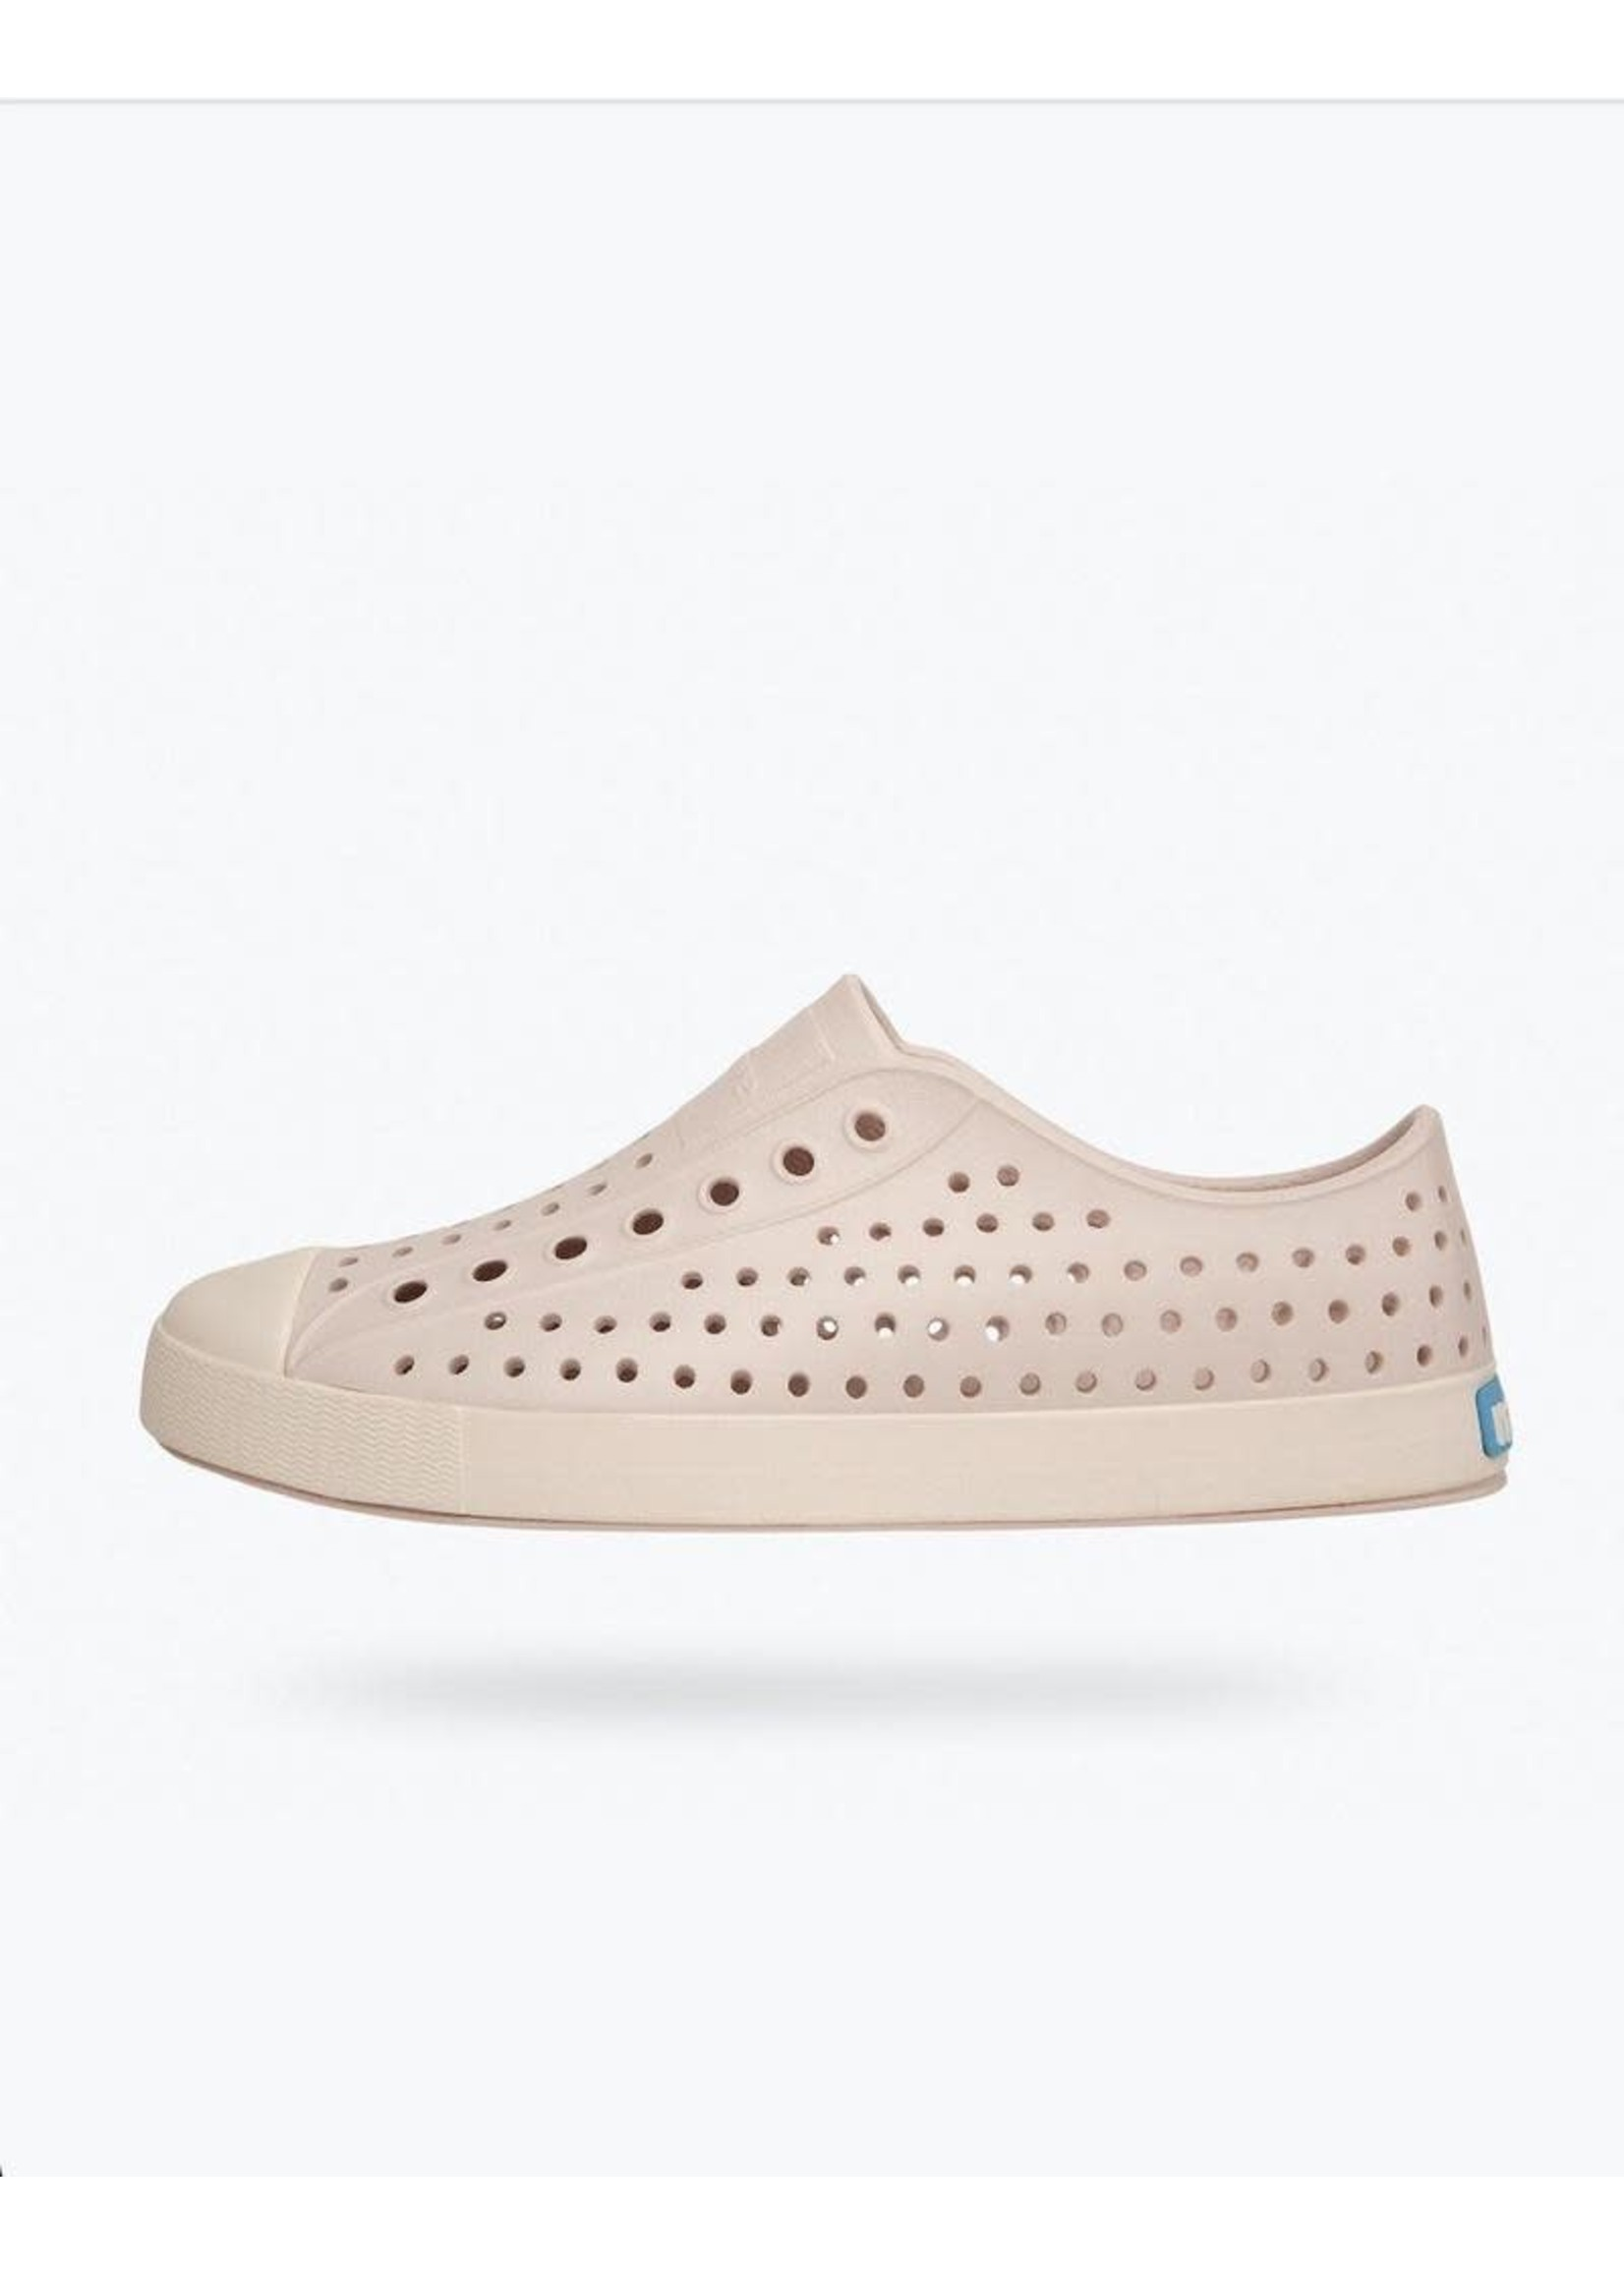 Native Shoes Native Shoes Jefferson Adult Dust Pink/ Lint Pink